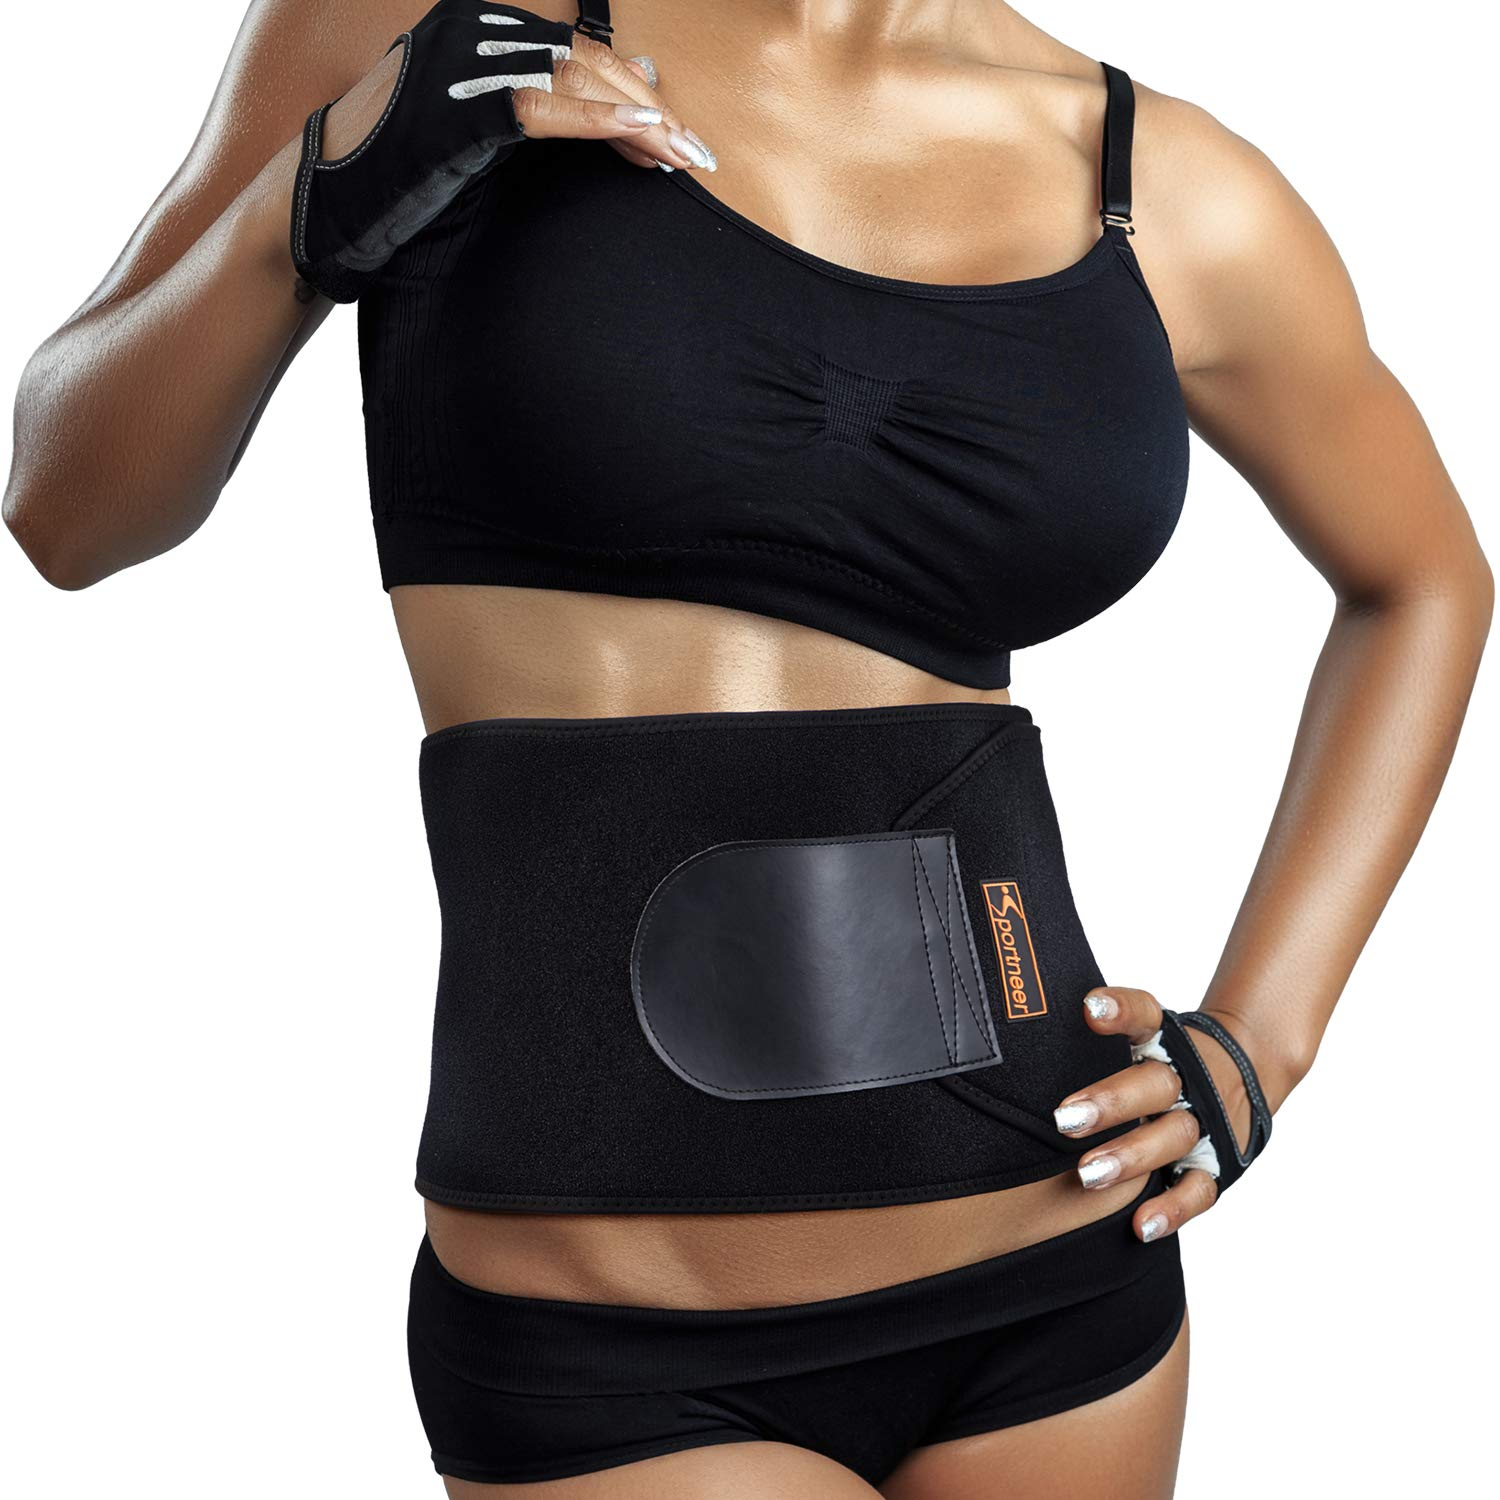 Sportneer Waist Trimmer, Adjustable Neoprene Waist Trainer Belt for Back Support, Waist Sweat Wrap, Sweat Enhancer, Body Slimmer, Stomach and Back Lumbar Support, Fits Up to 41 Inches, M-Size